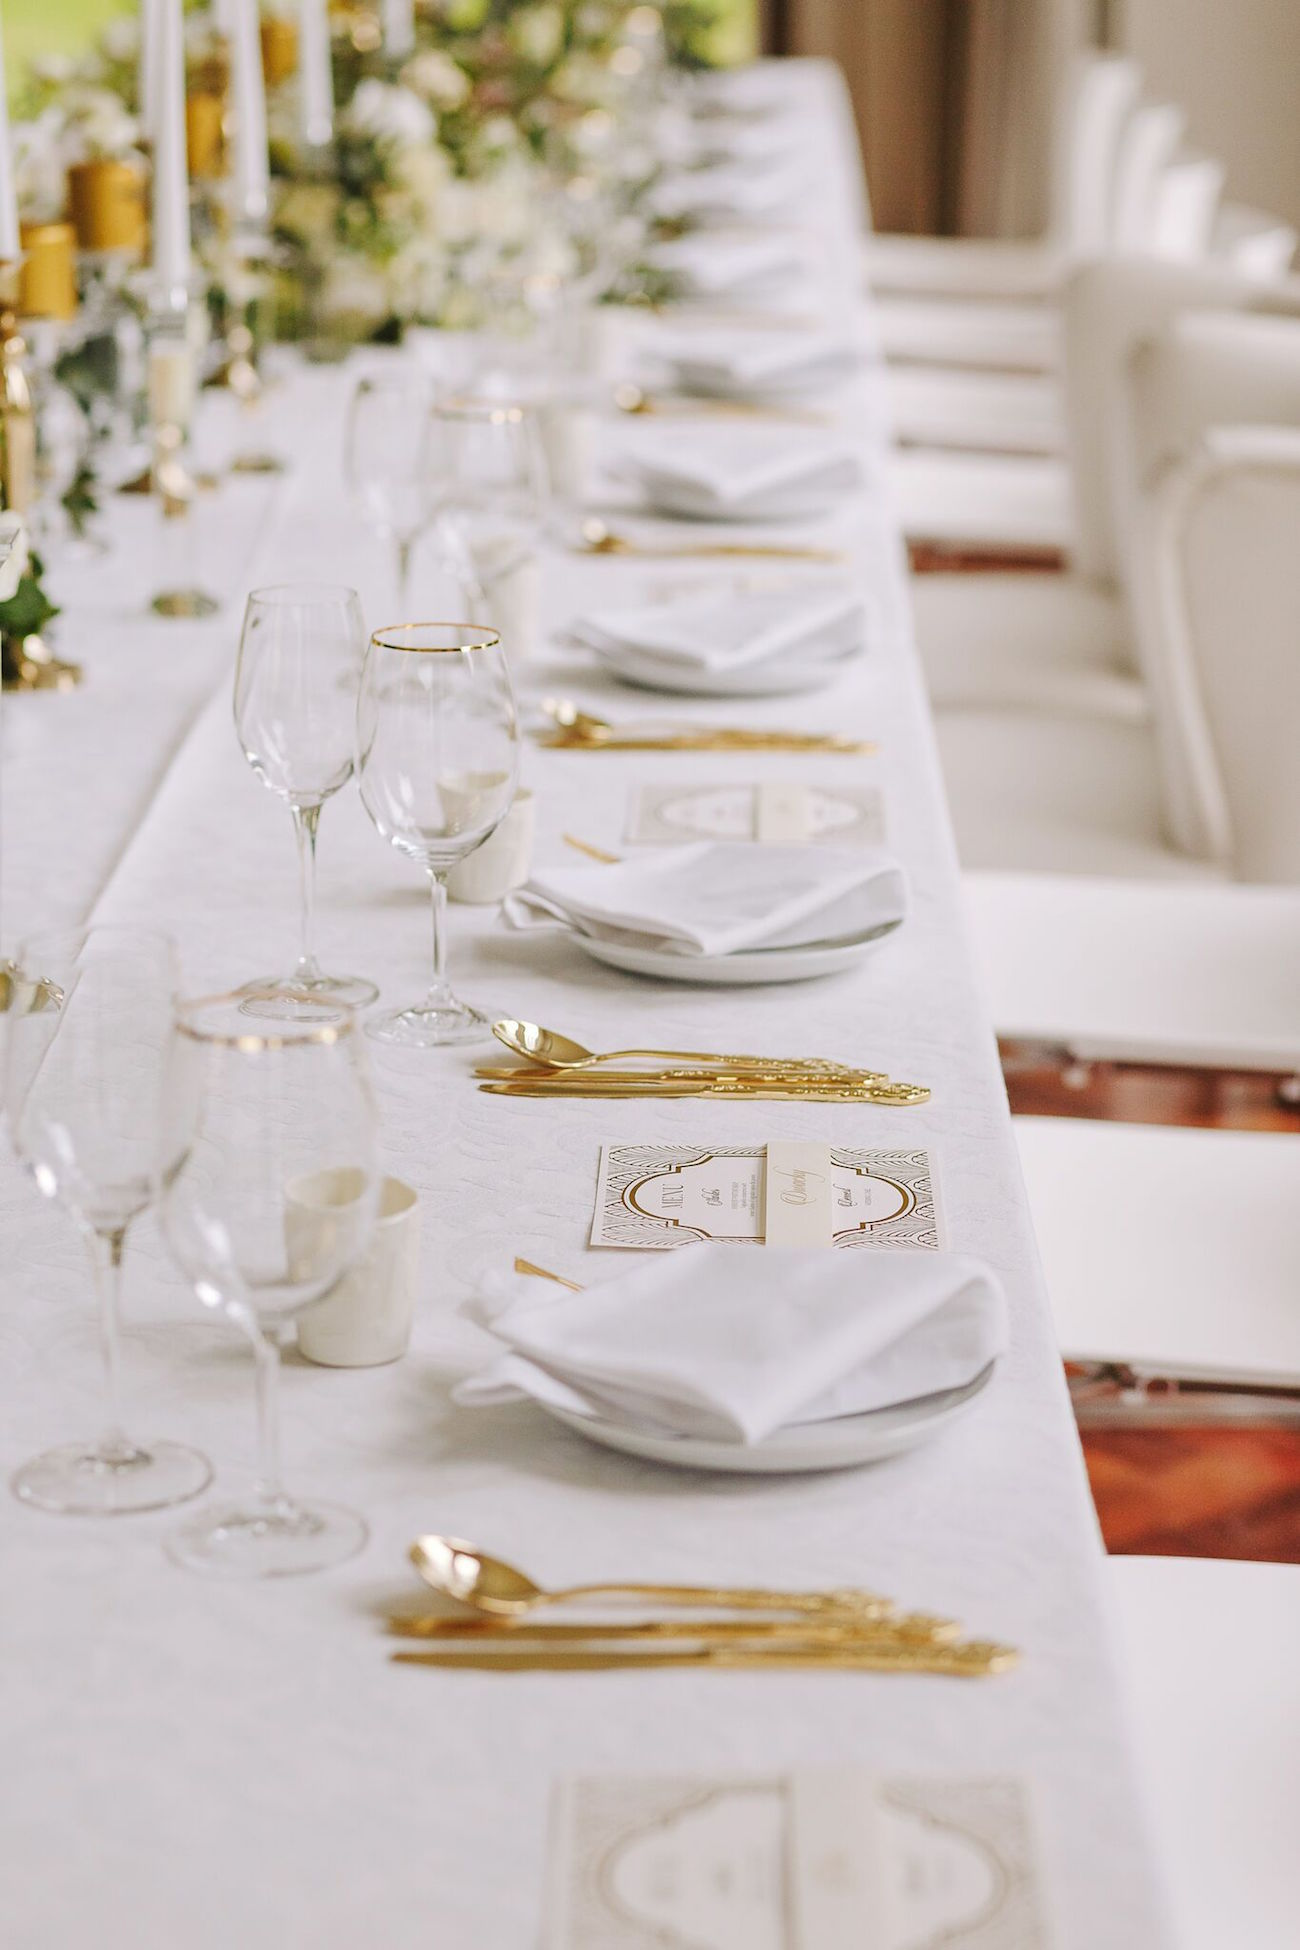 Vintage Glamour Winter Wedding Table Decor | Credit: Jani B & Bright and Beautiful